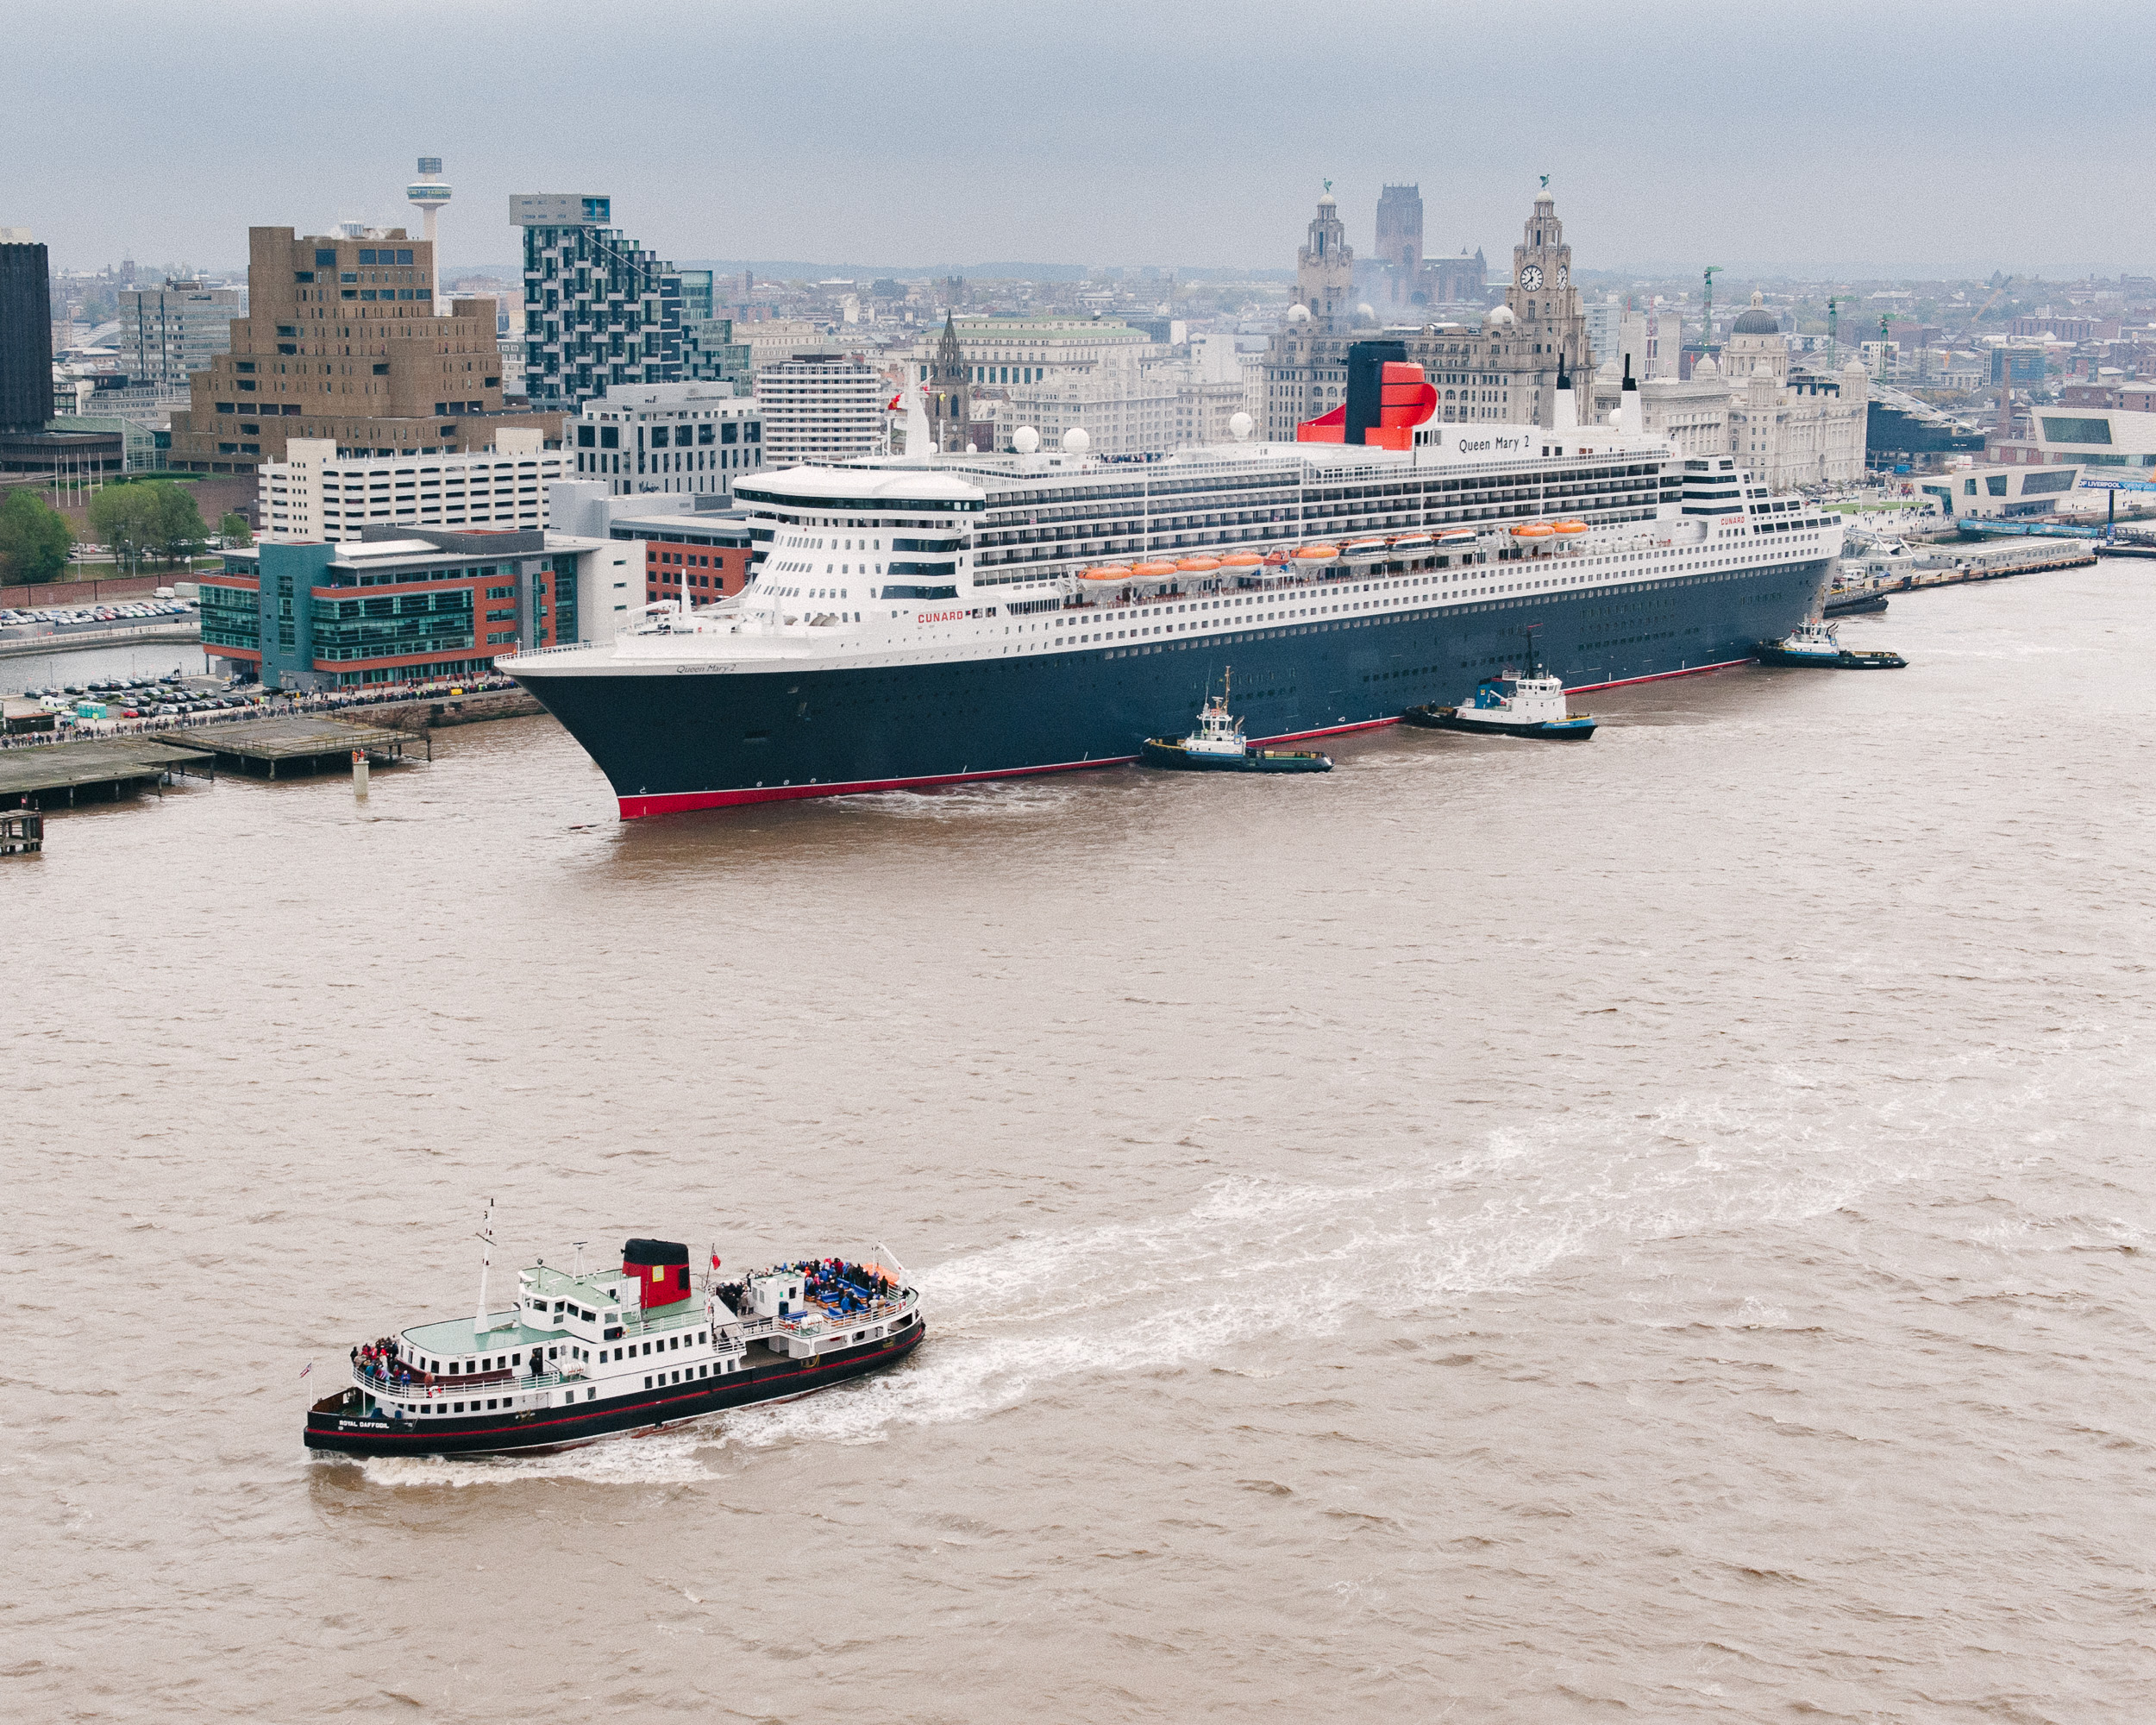 06-queen-mary-2-liverpool-2280-pete-carr.jpg